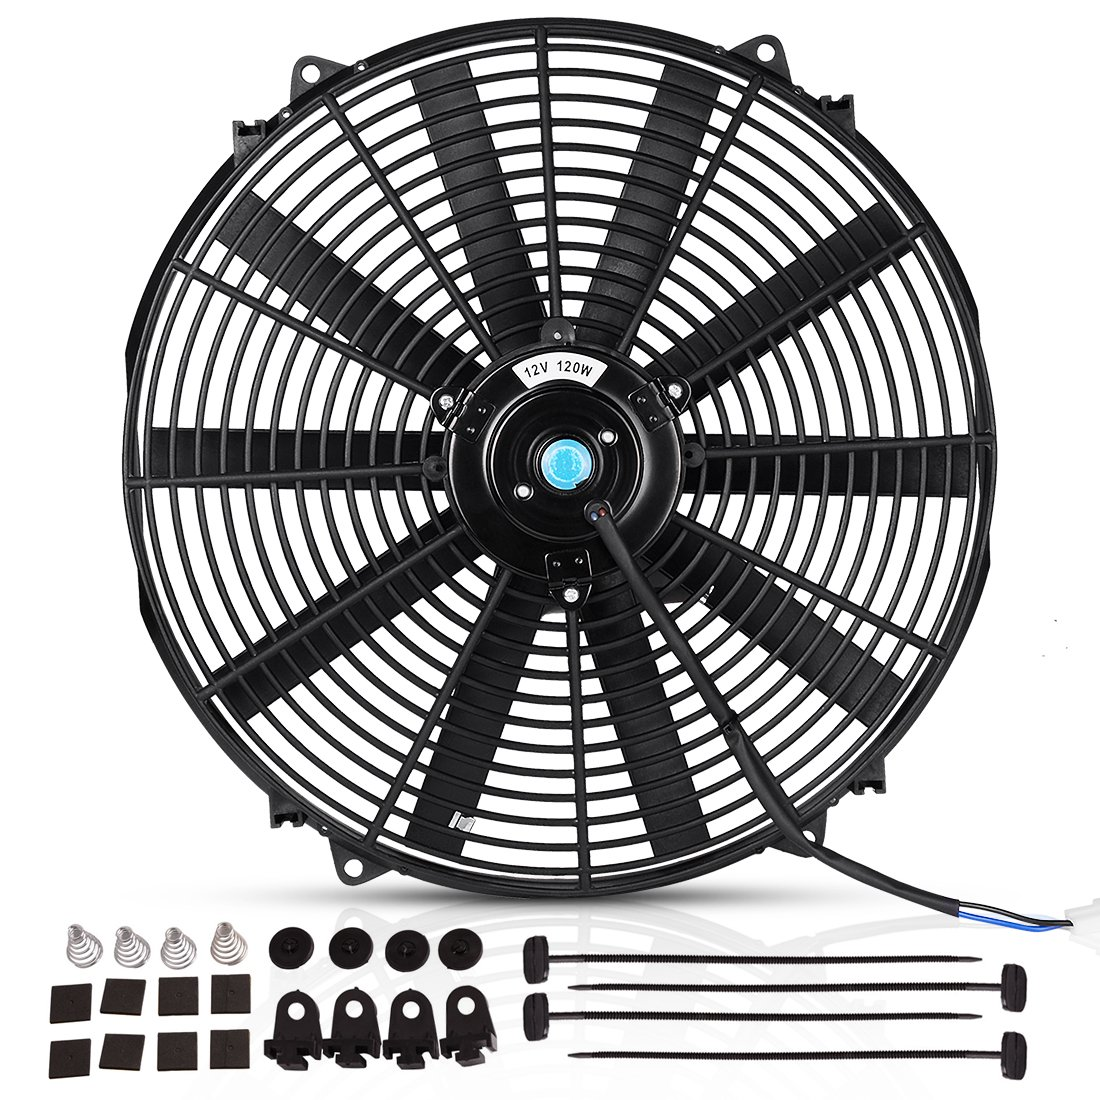 "16"" Radiator Cooling Fan Electric Mounting Kit 12V for Motorcycle Bike 2000 CFM(Diameter 16.73"" Depth 3.26"")"